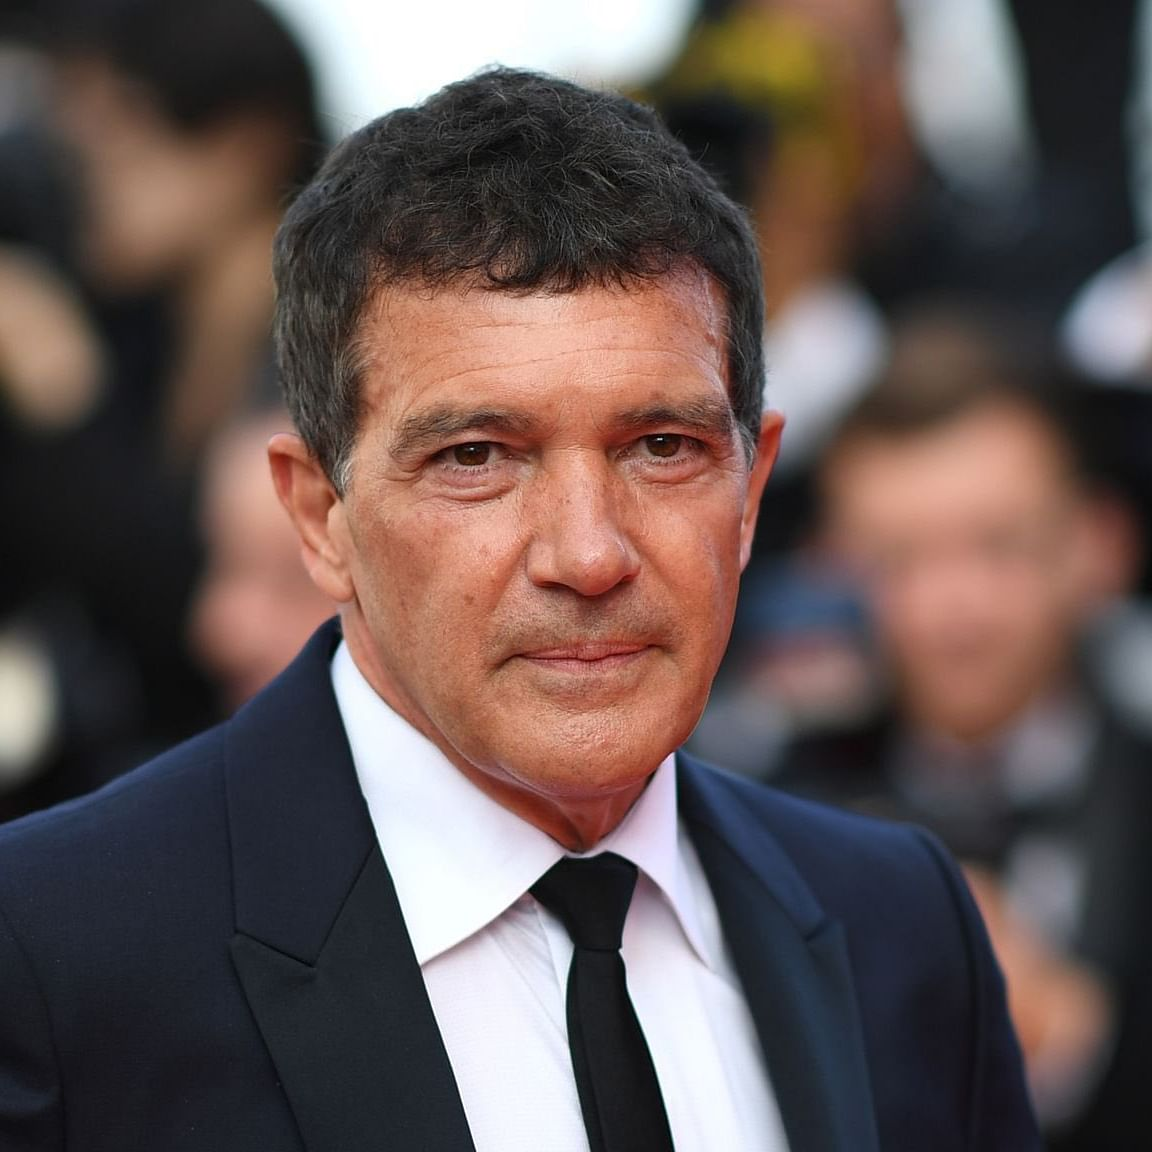 Spanish actor Antonio Banderas tests positive for coronavirus